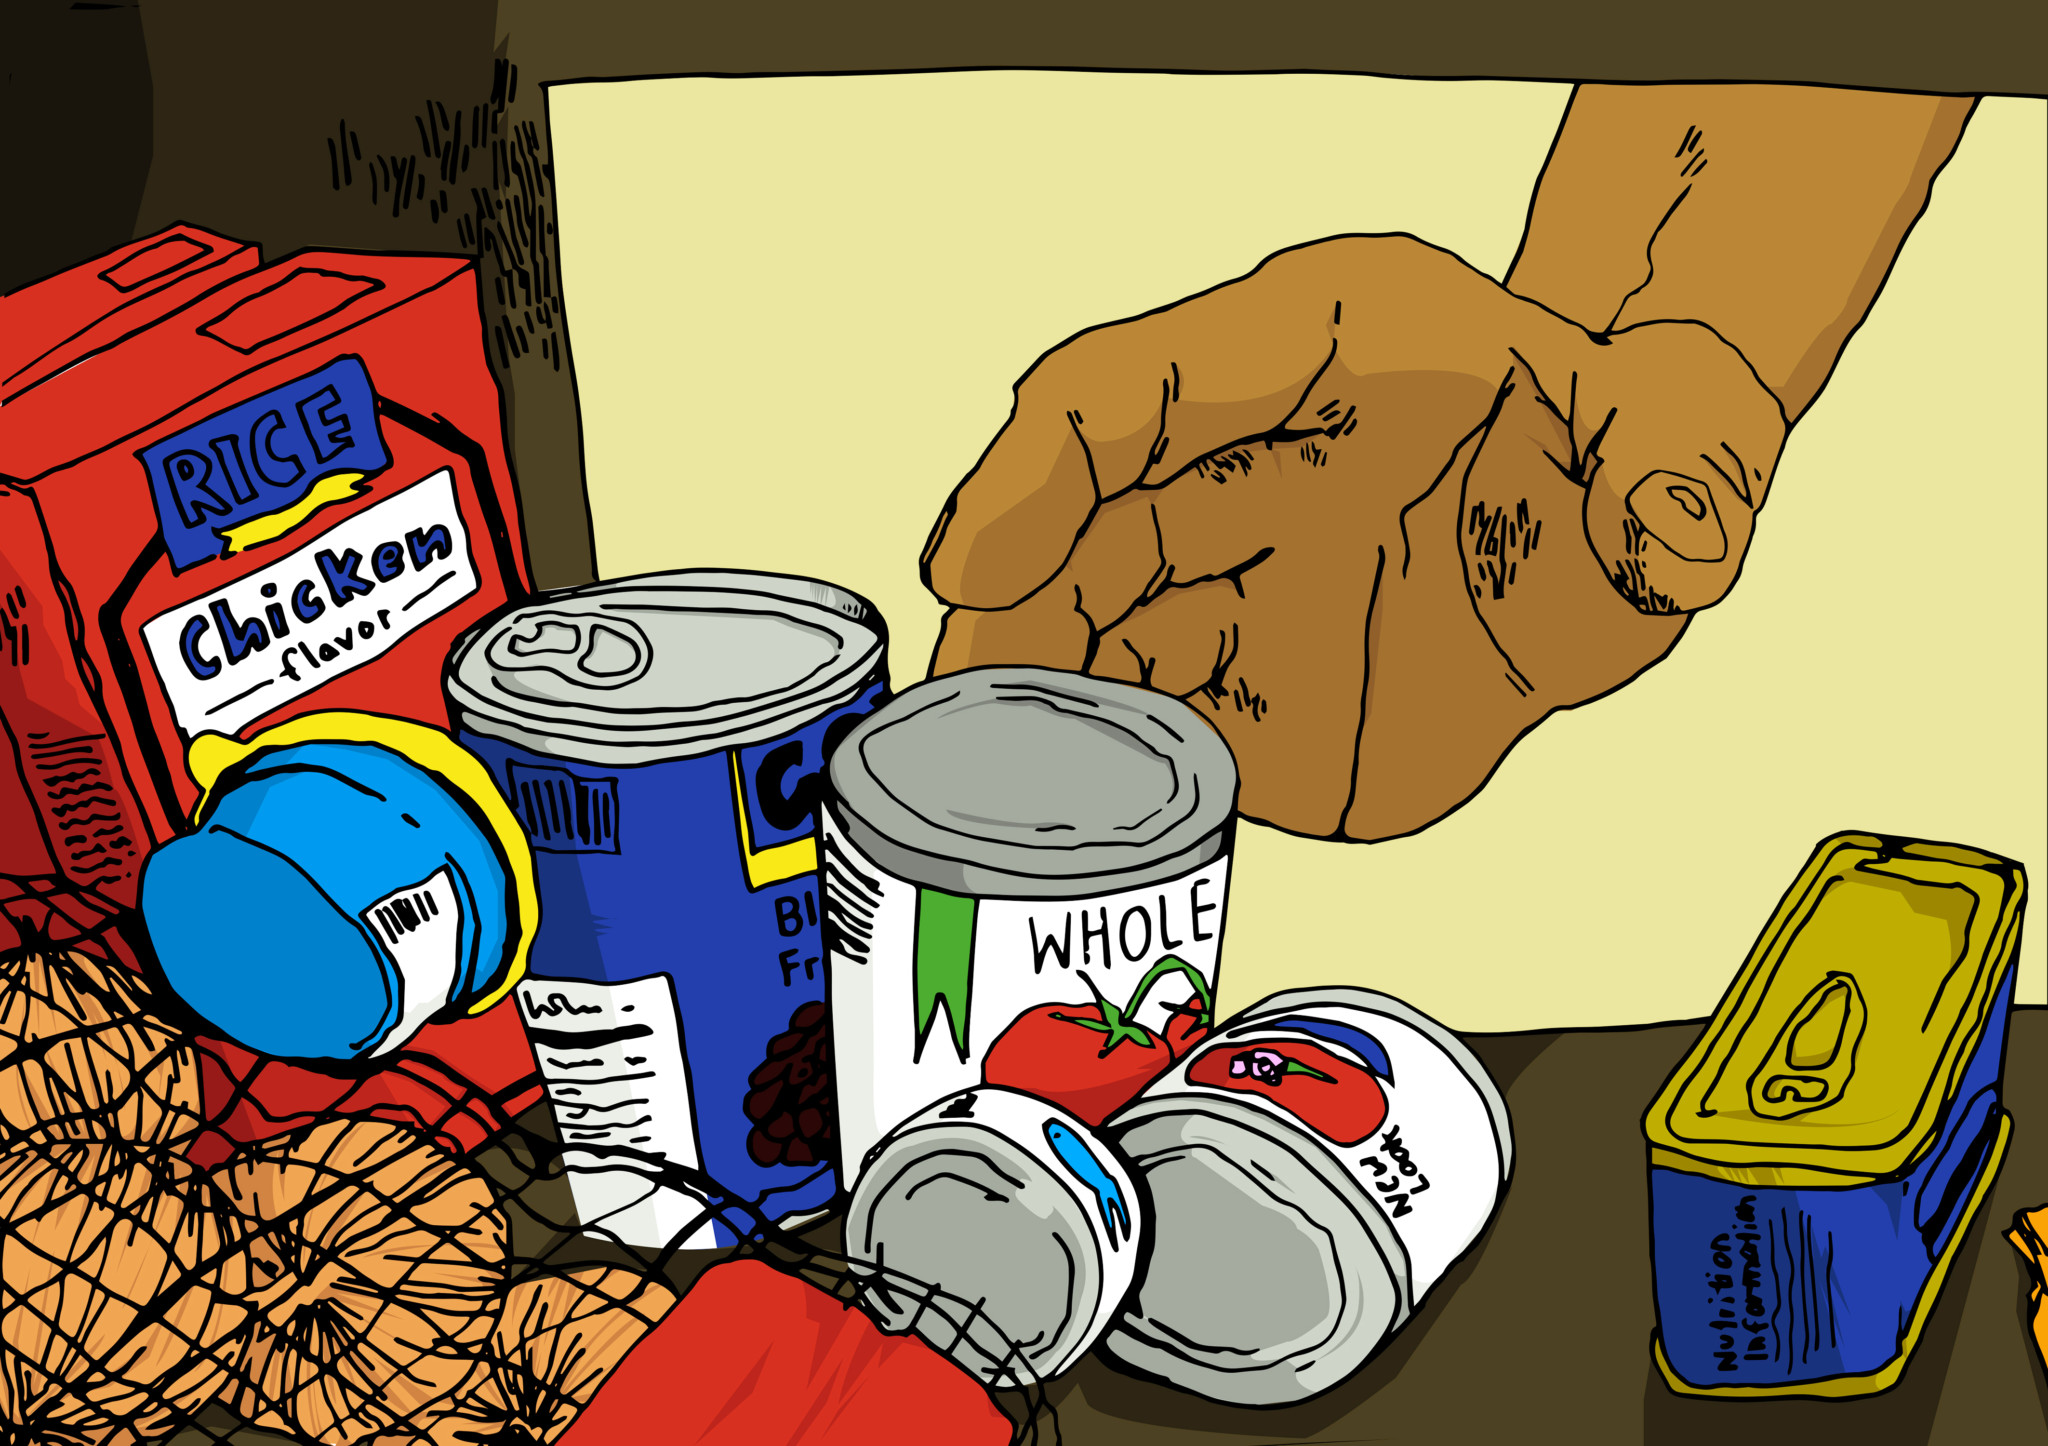 Illustration of hand reaching for canned food by Asia Babiuk